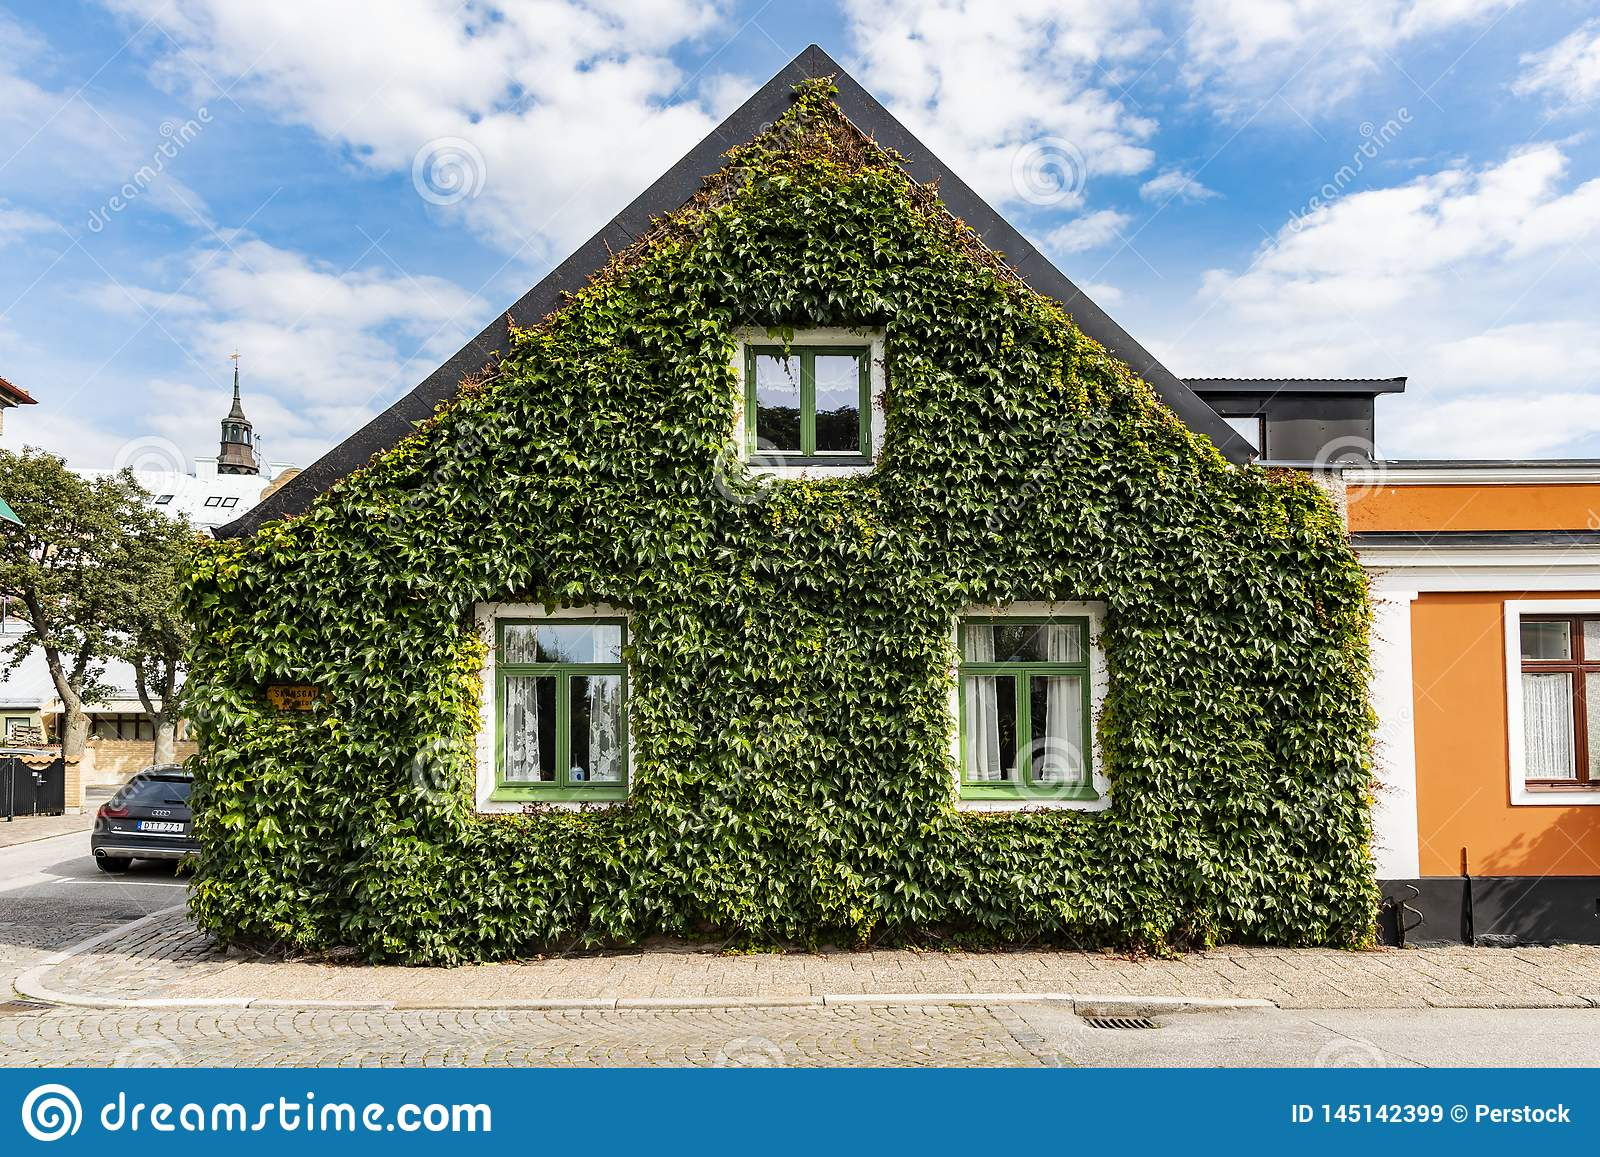 English ivy covering house gable Ystad Sweden